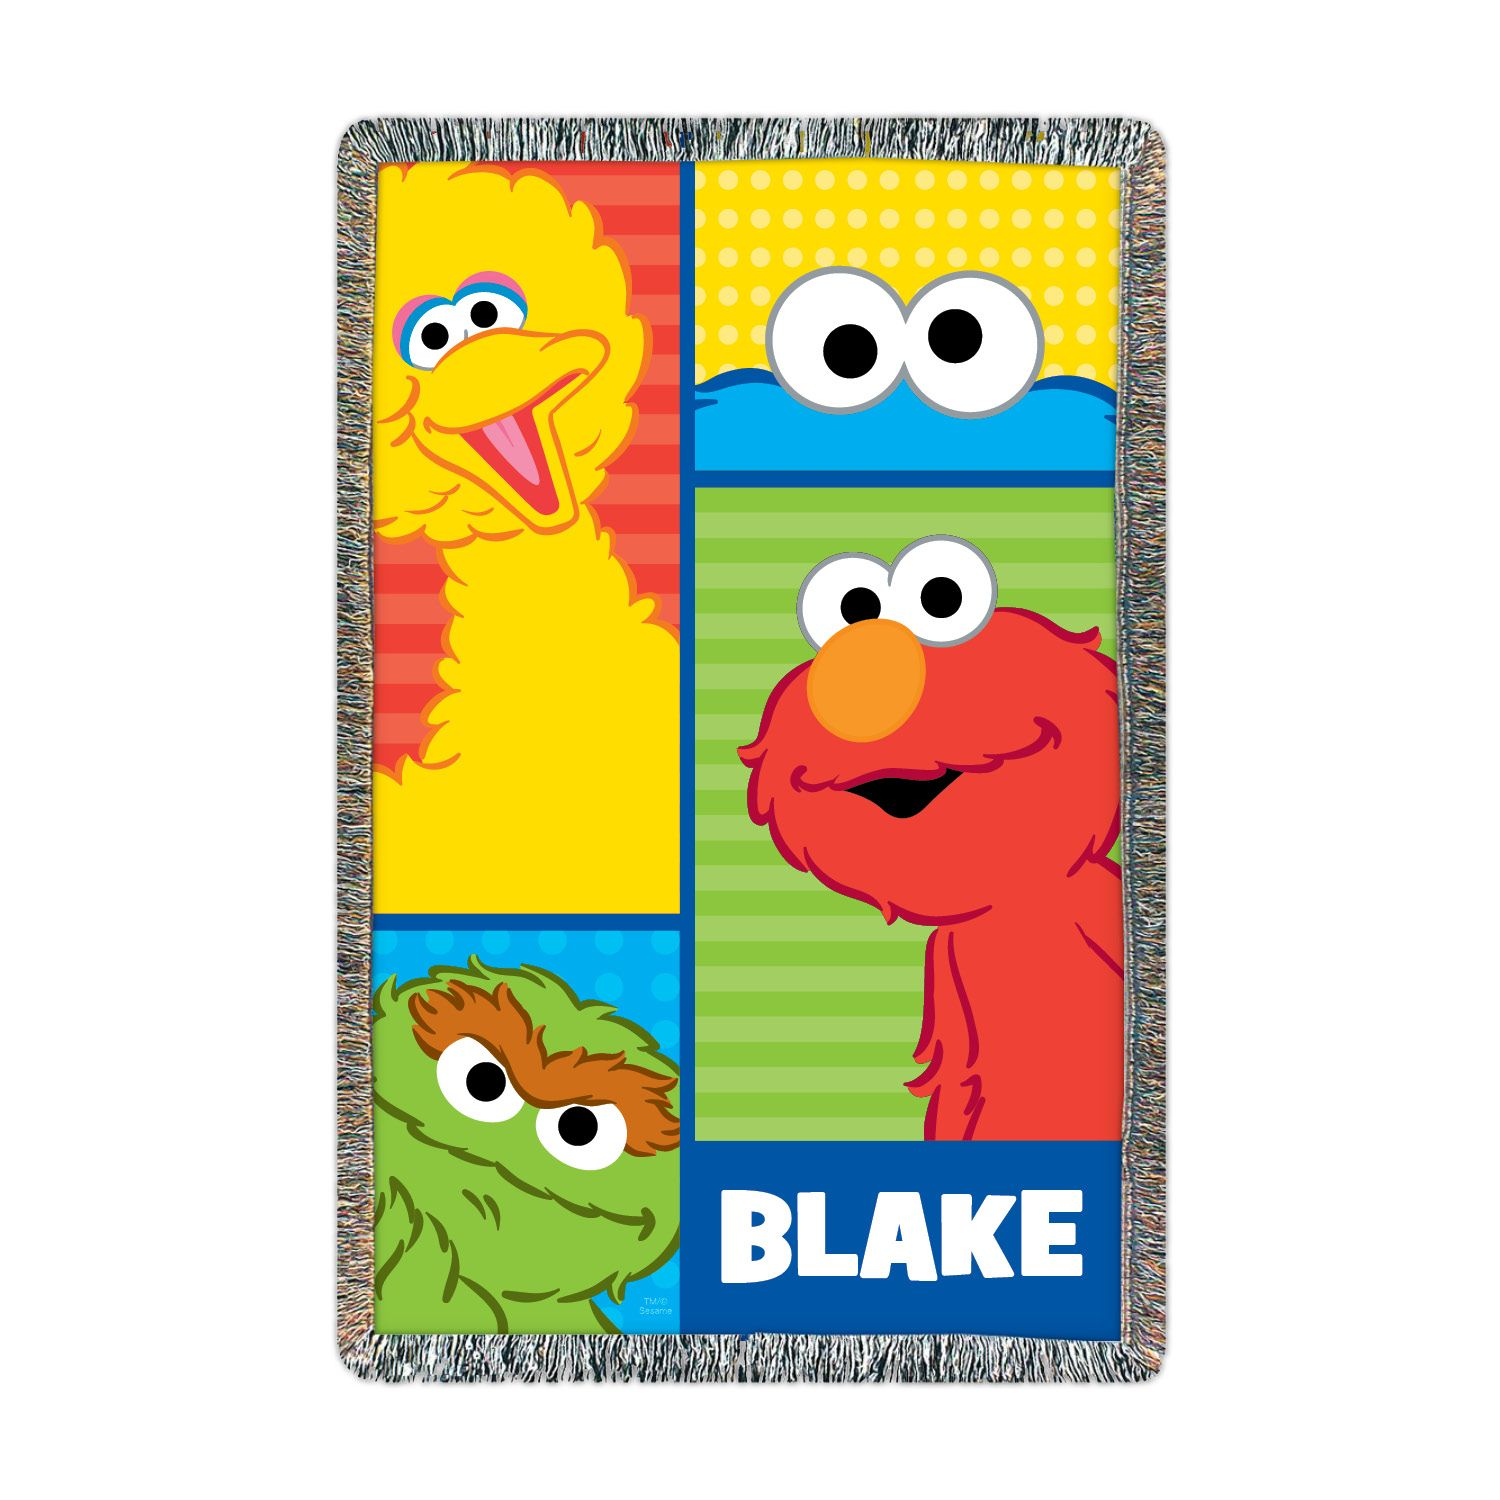 Sesame Street Elmo And Friends Throw With Images Elmo And